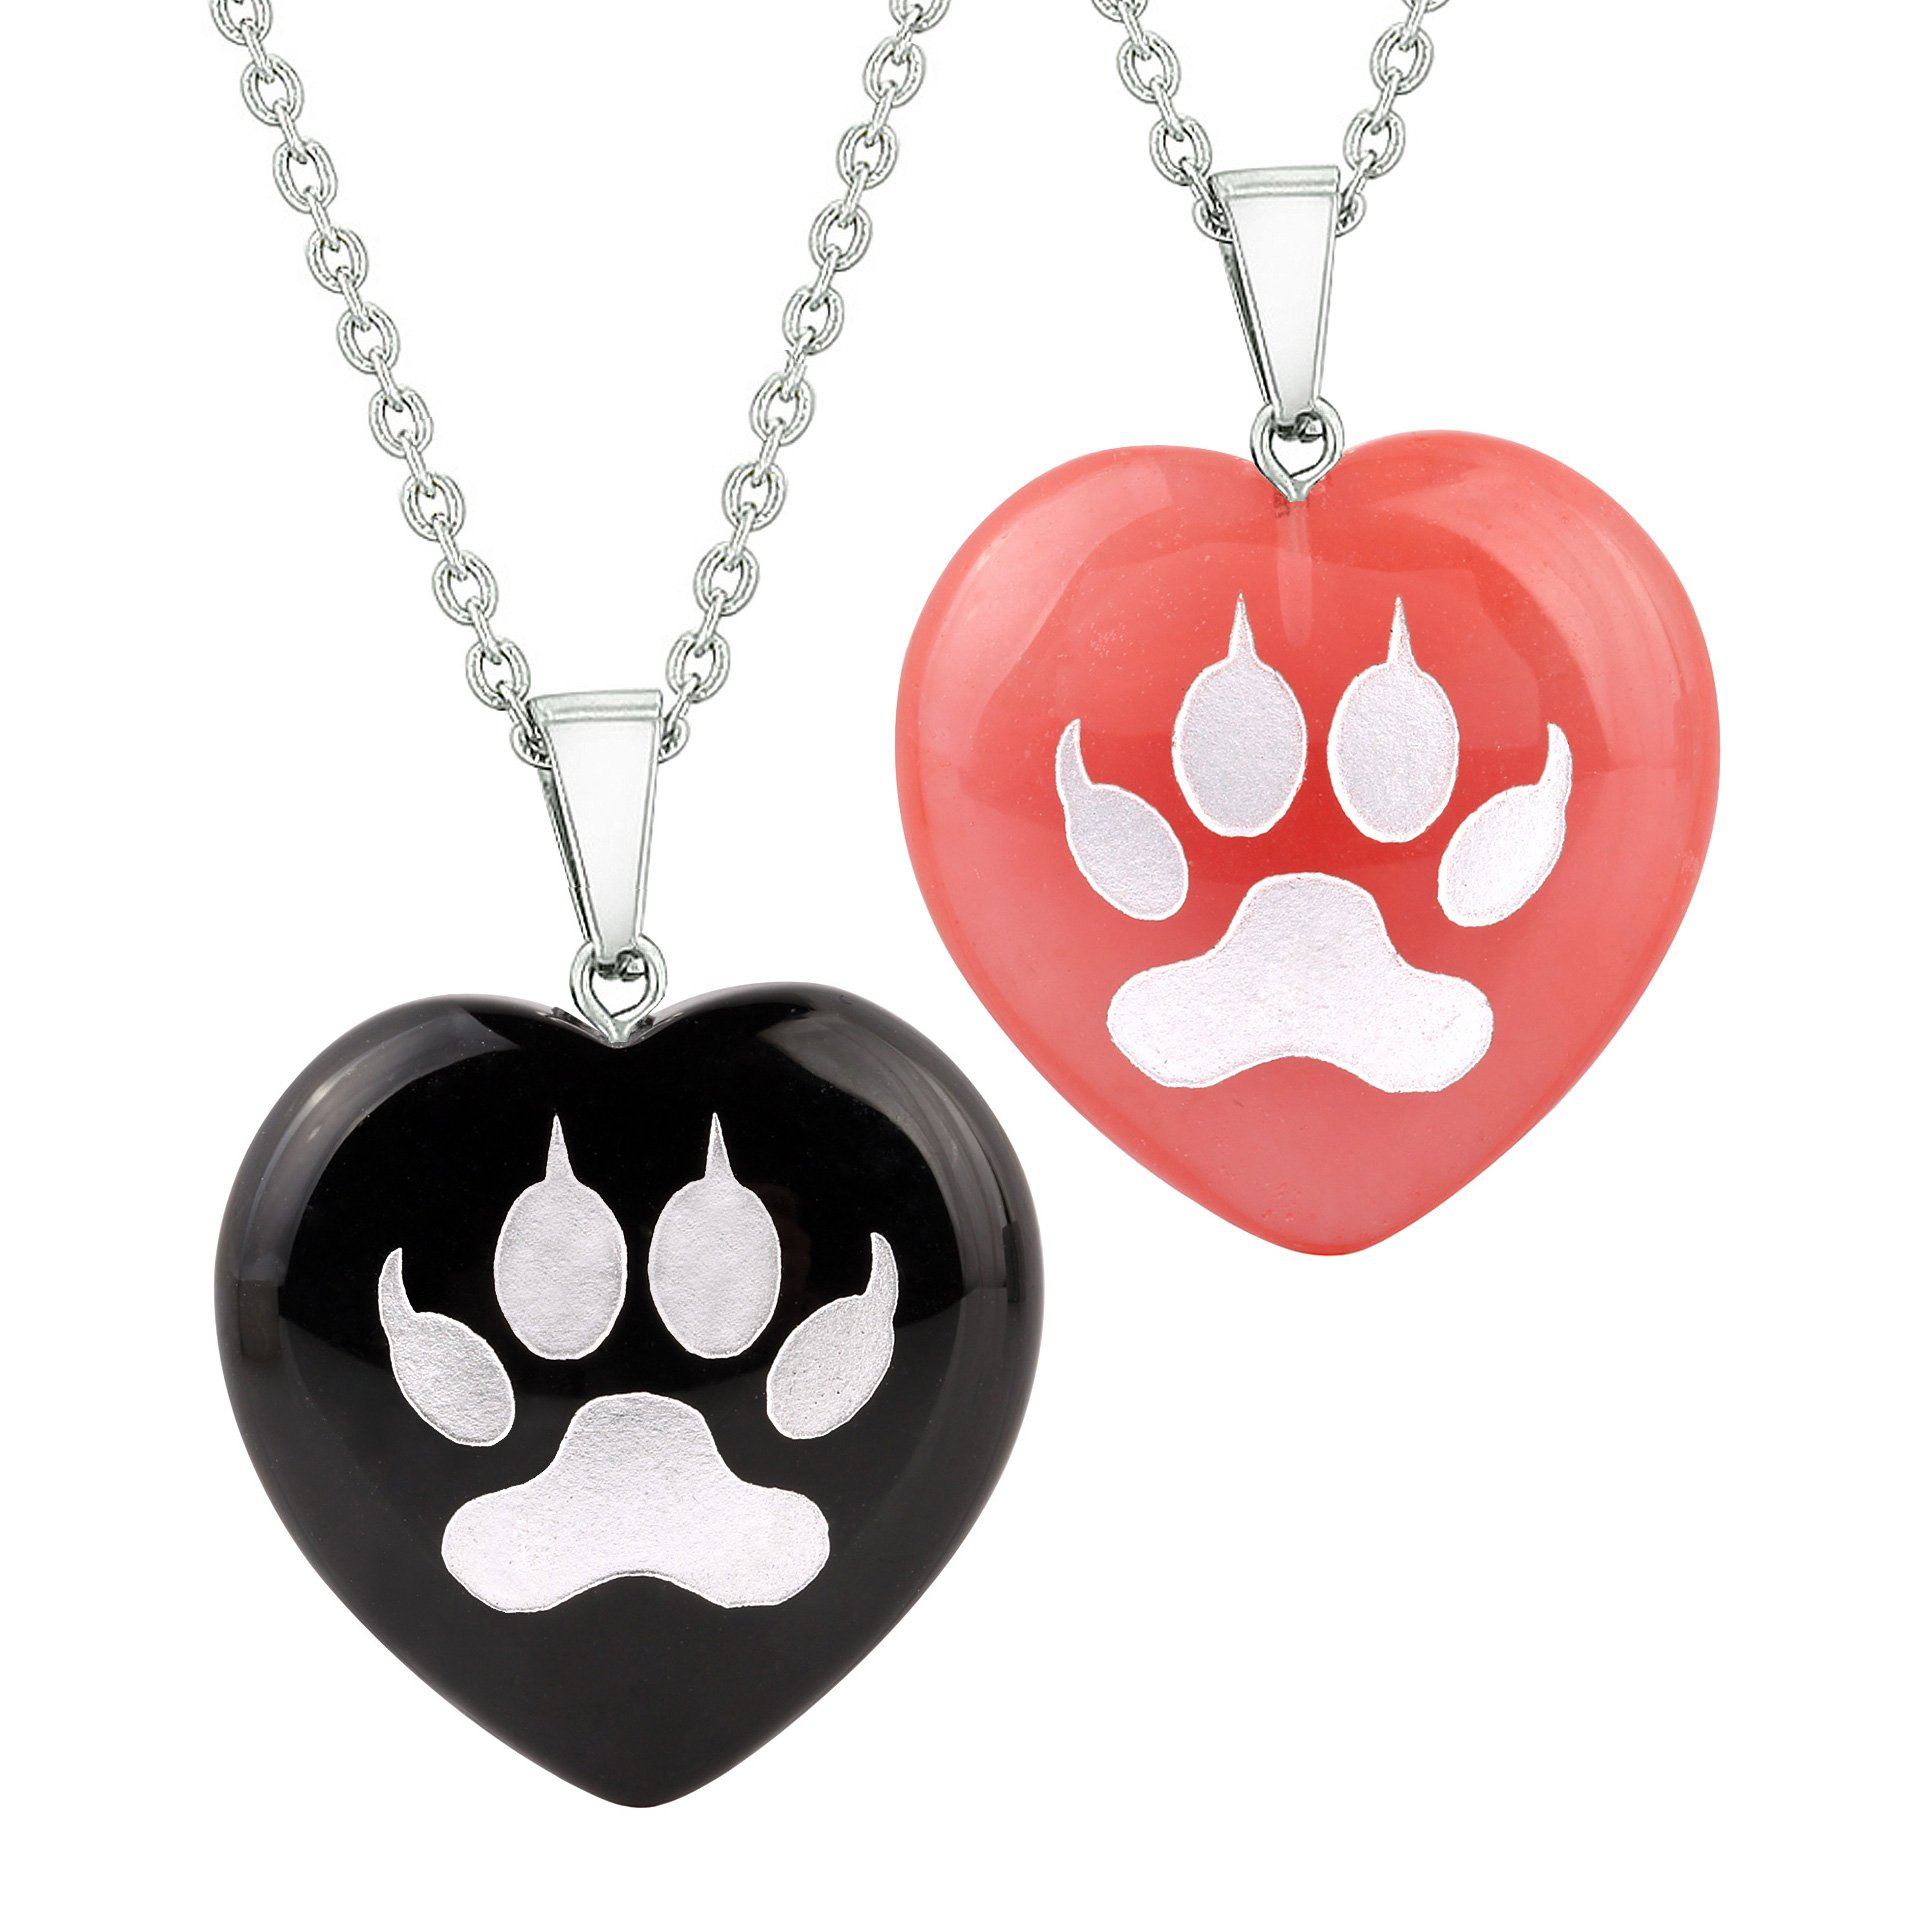 Heart Amulets Wolf Paw Courage Magical Love Couples Best Friends Agate Simulated Quartz Necklaces